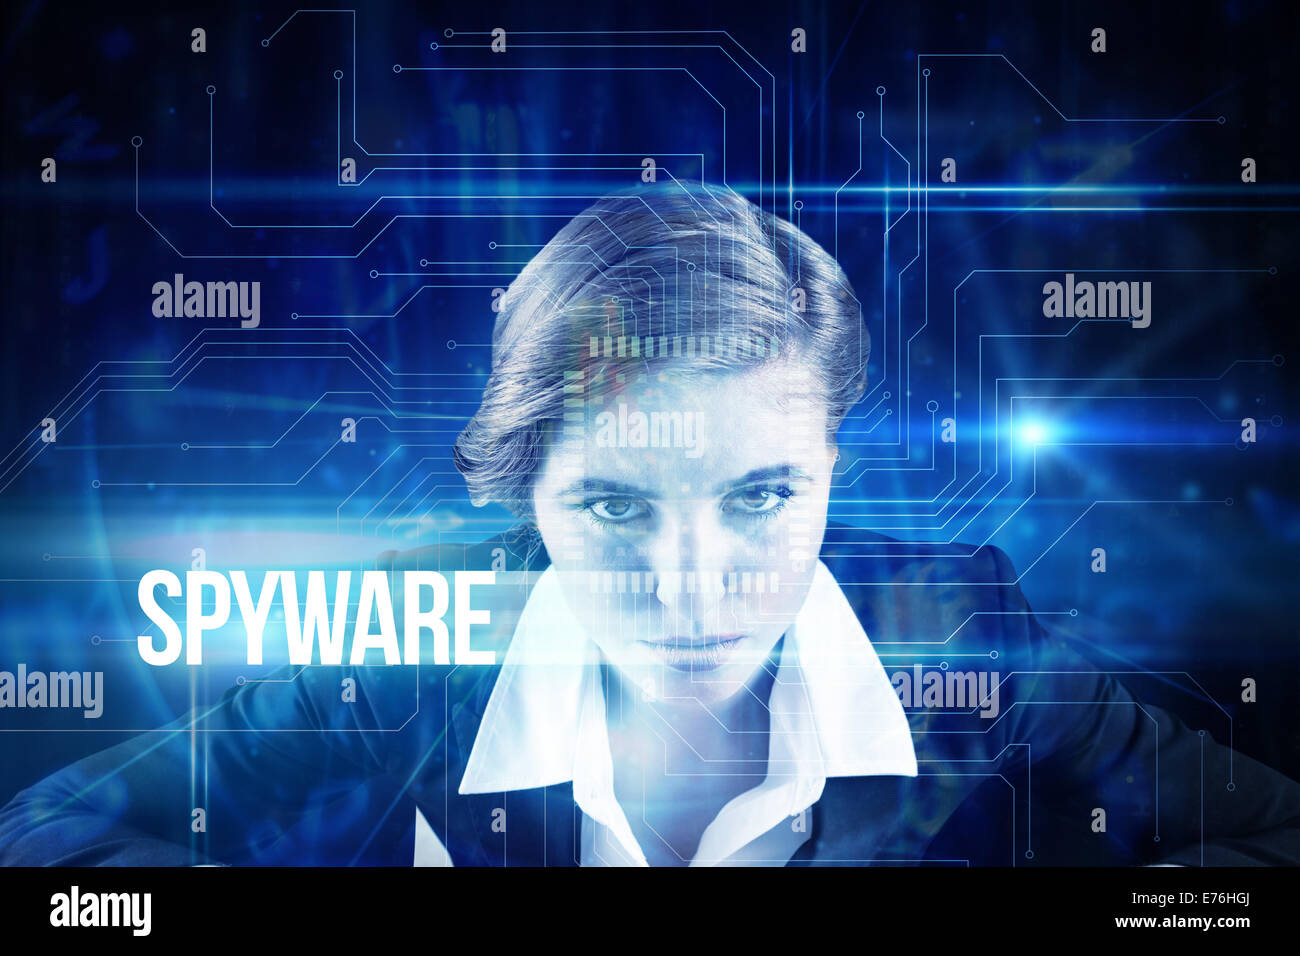 Spyware against blue technology interface with circuit board - Stock Image